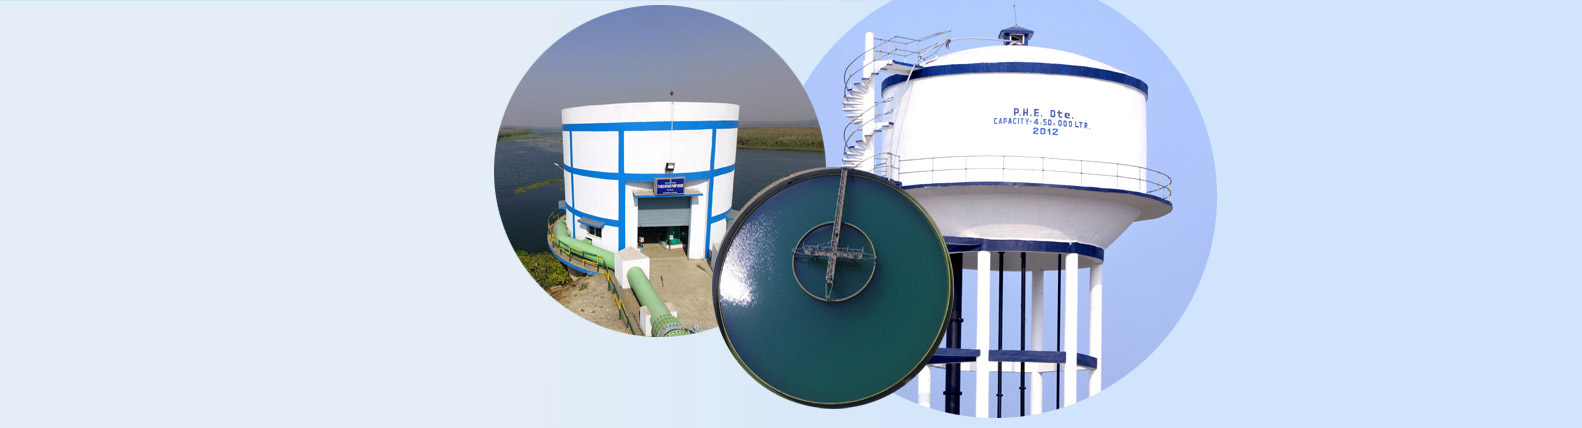 Collage images of OHR, Pump House & Clariflocculator of a WTP.